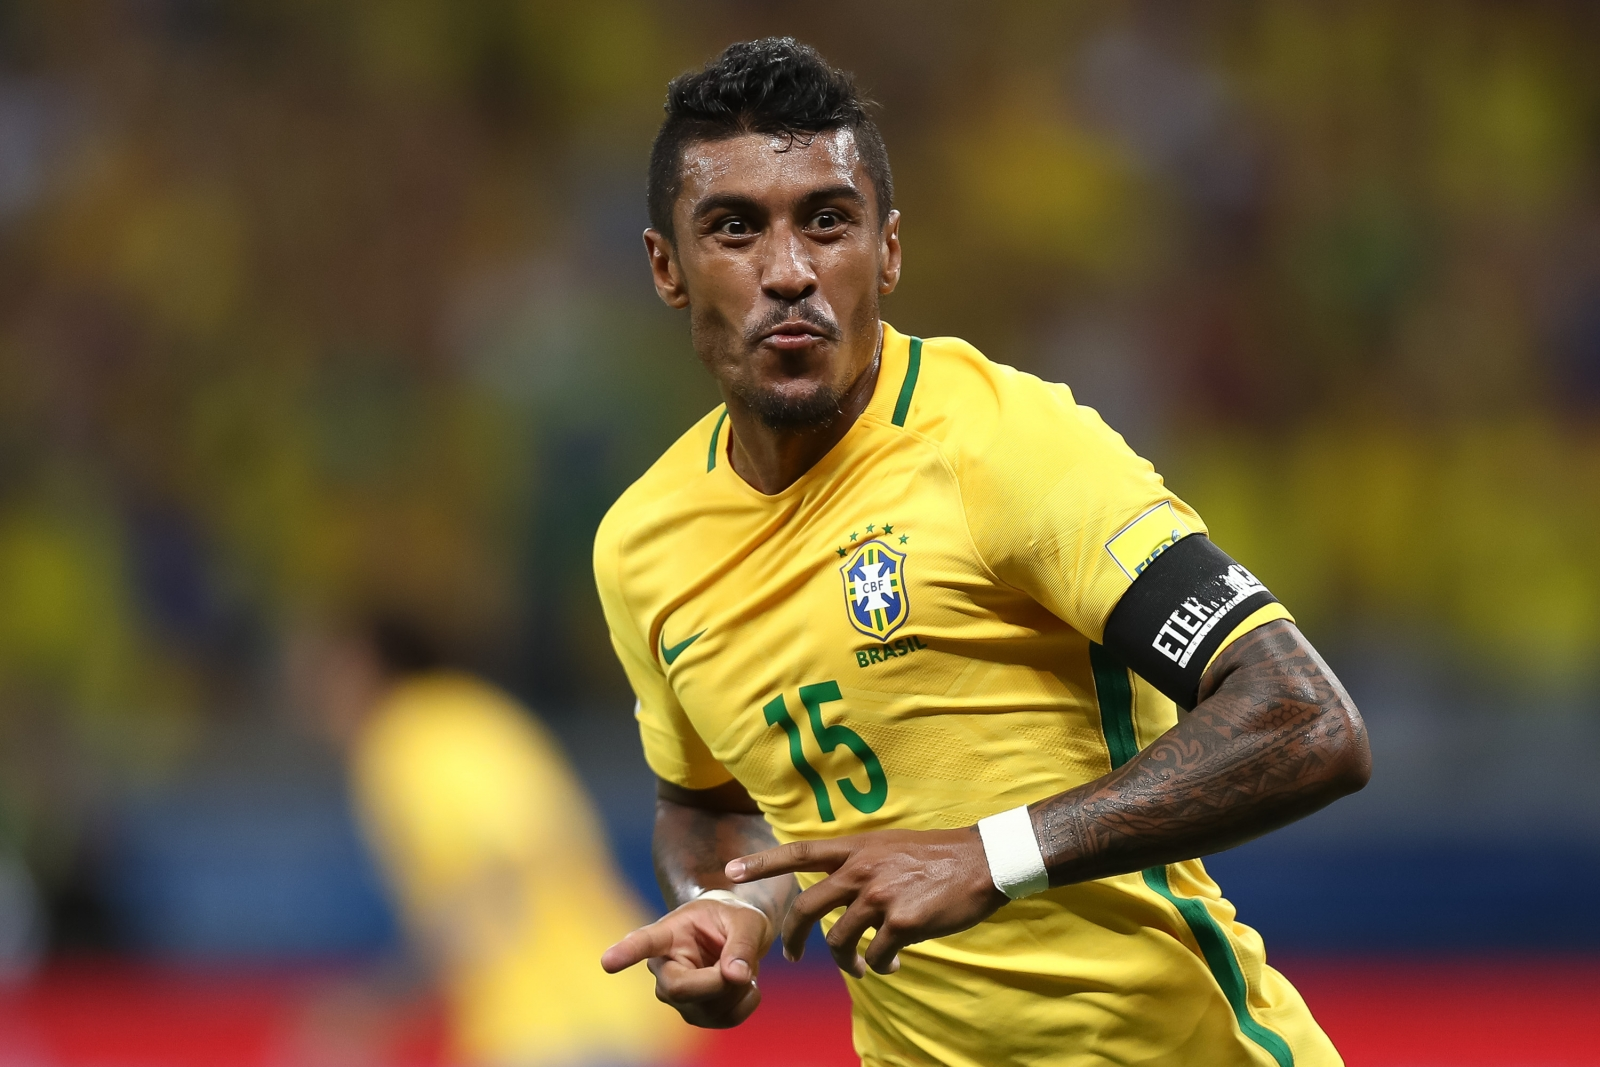 Paulinho ´thinking about Barcelona´ ahead of potential new offer